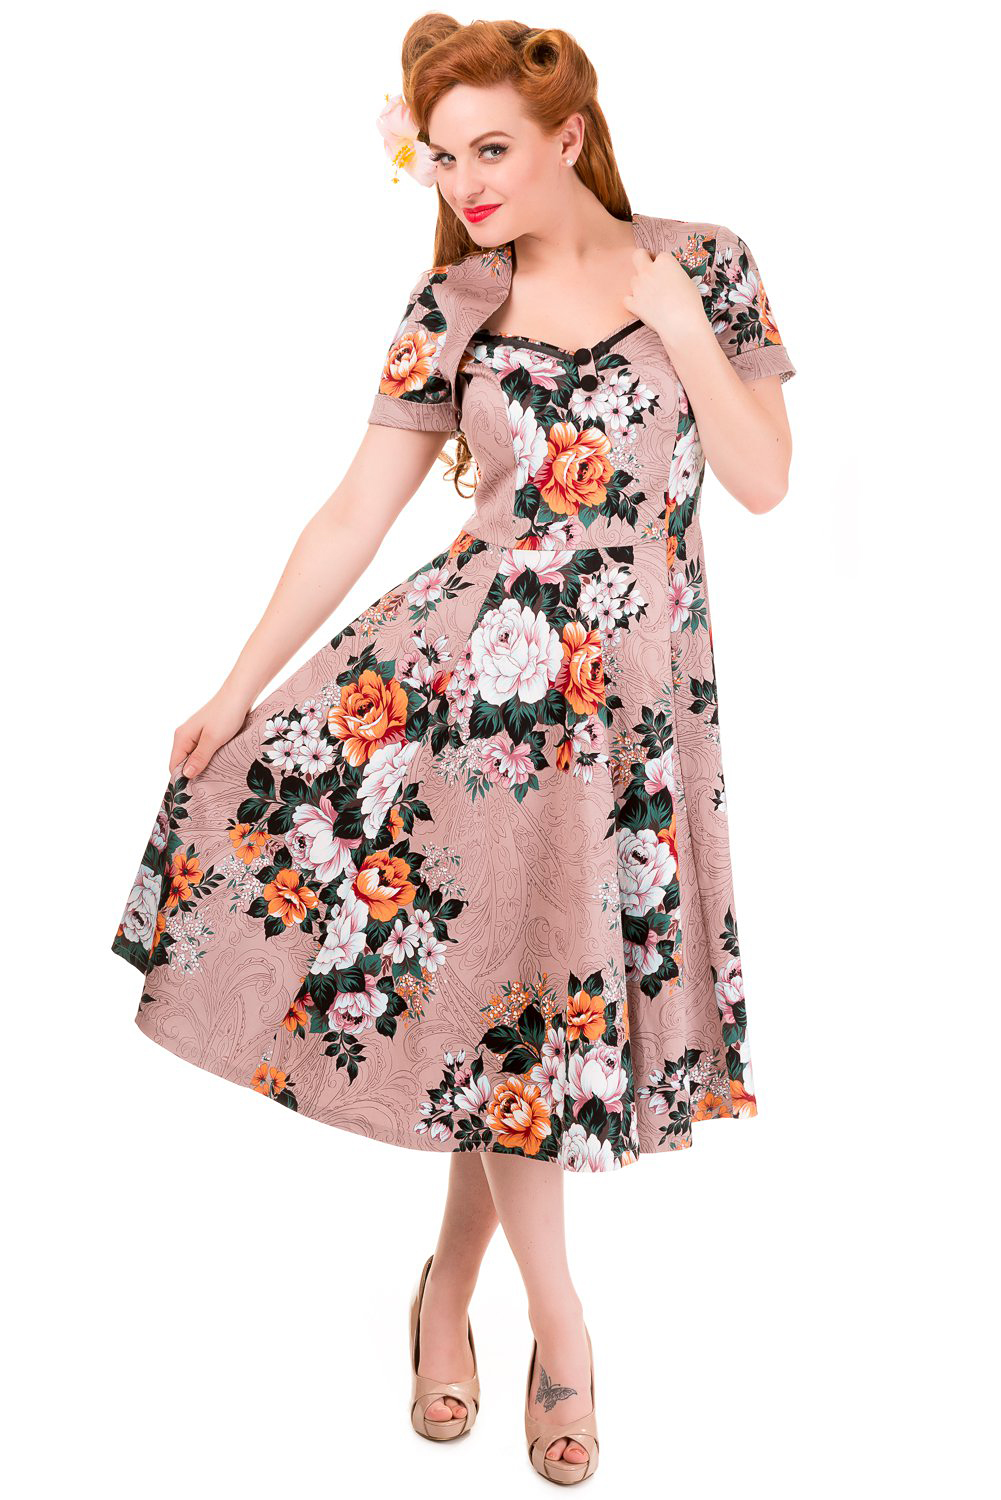 8cd843483f View the Banned Clothing Gracious Dress Reviews and why not join in and  have your say.